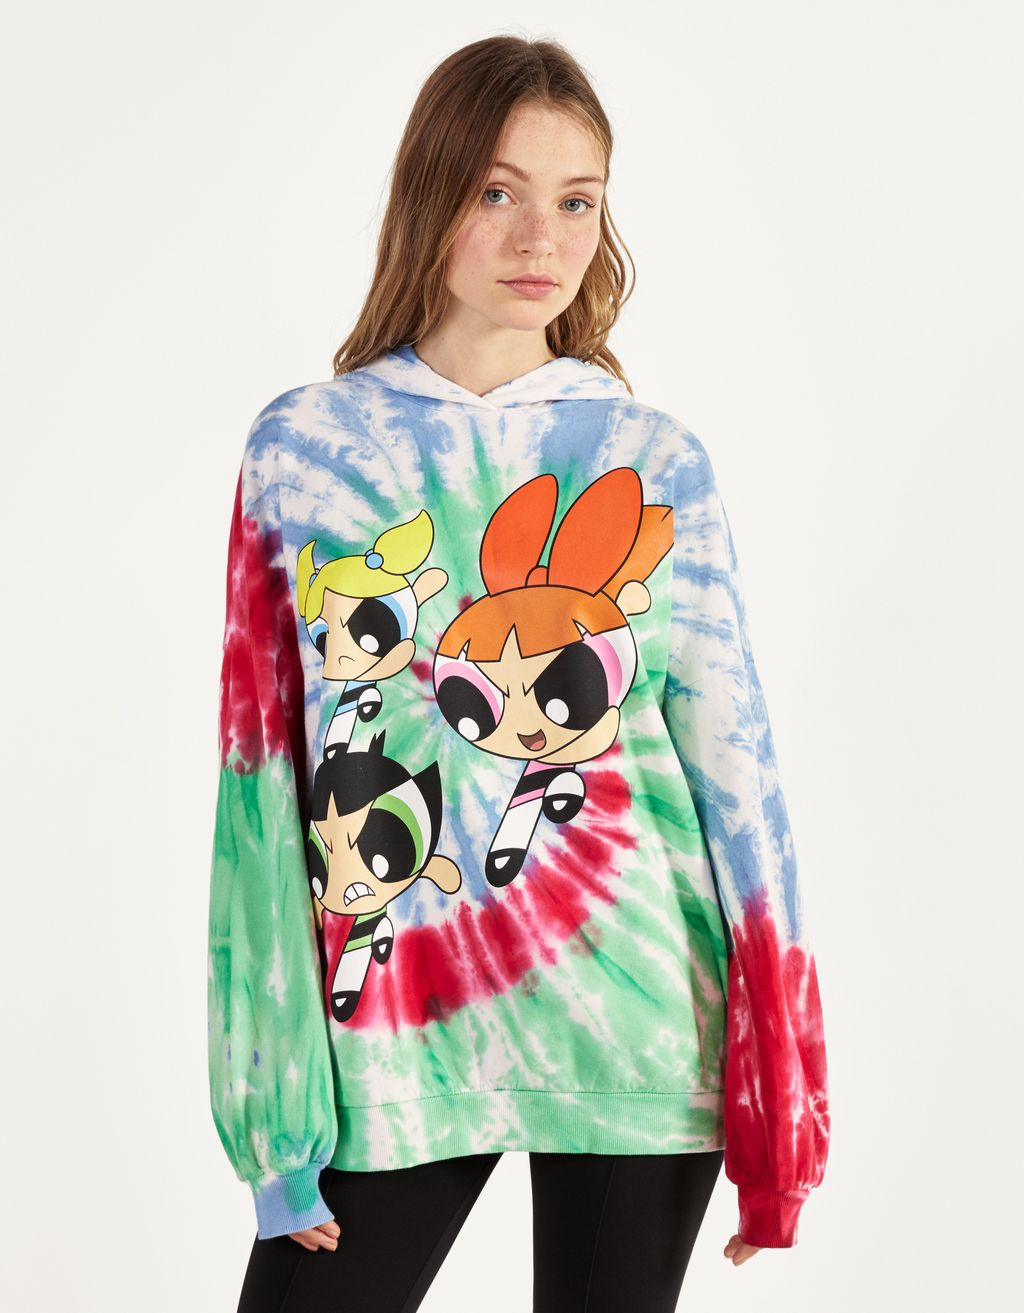 The Powerpuff Girls x Bershka hoodie